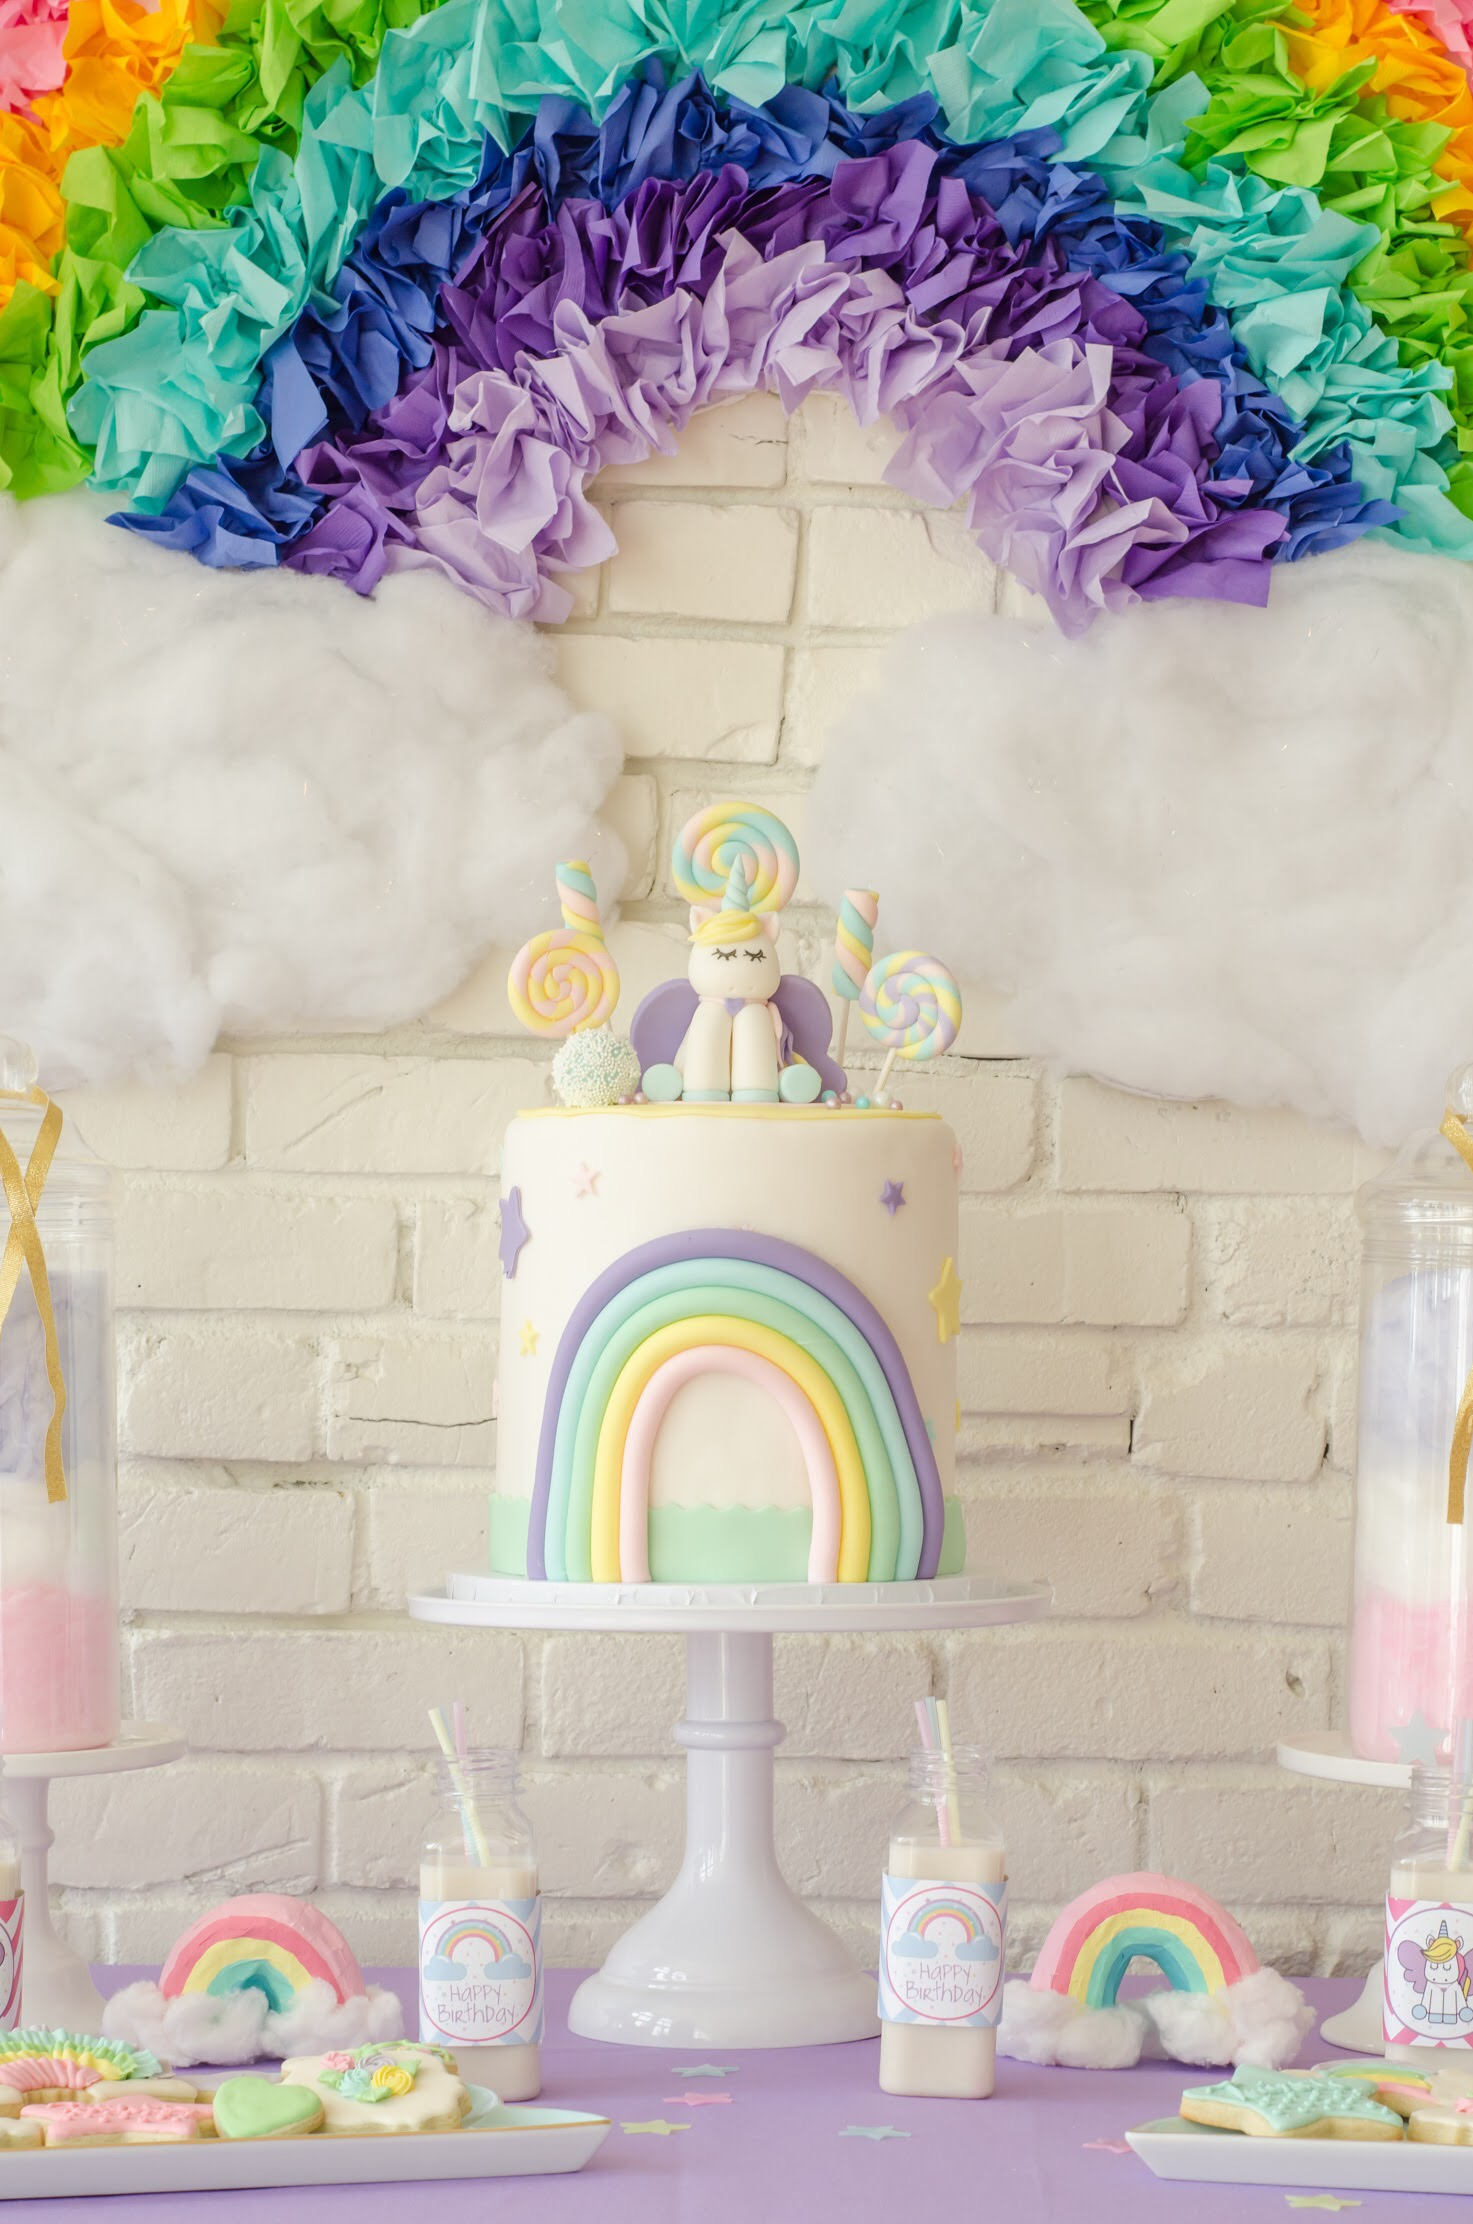 Super cute Unicorn birthday cake from Sweet Carousel Cakes. Come see all the Unicorn Birthday Party Ideas at Mint Event Design www.minteventdesign.com #unicornparty #birthdayparty #birthdaypartyideas #pastelrainbow #birthdaycake